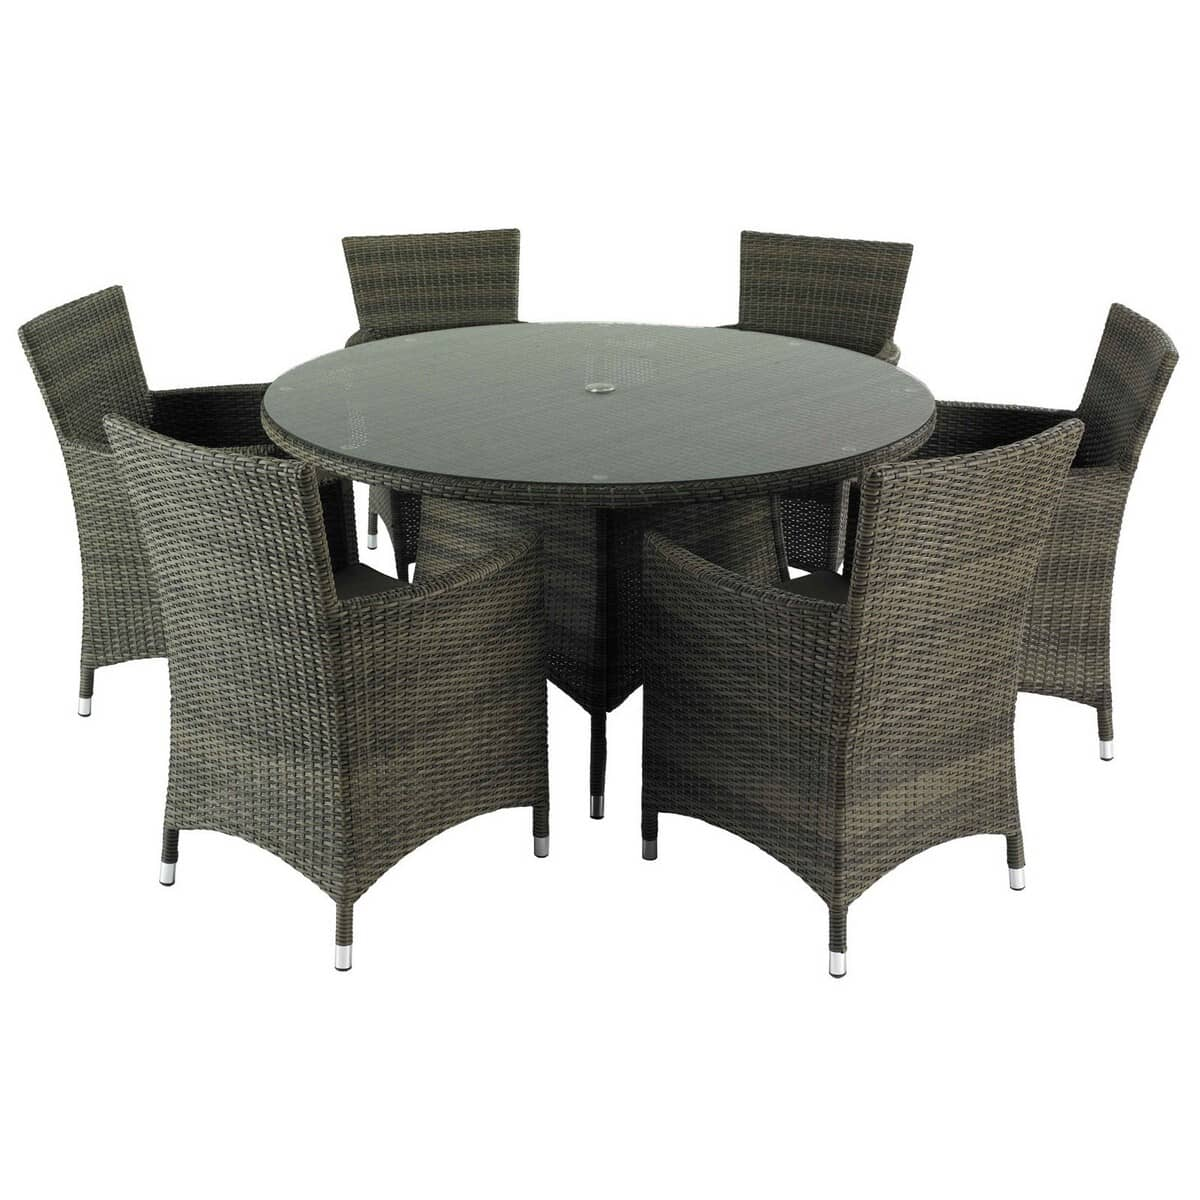 Hartman Bentley 6 Seat Dining Set Hbenset03 Garden